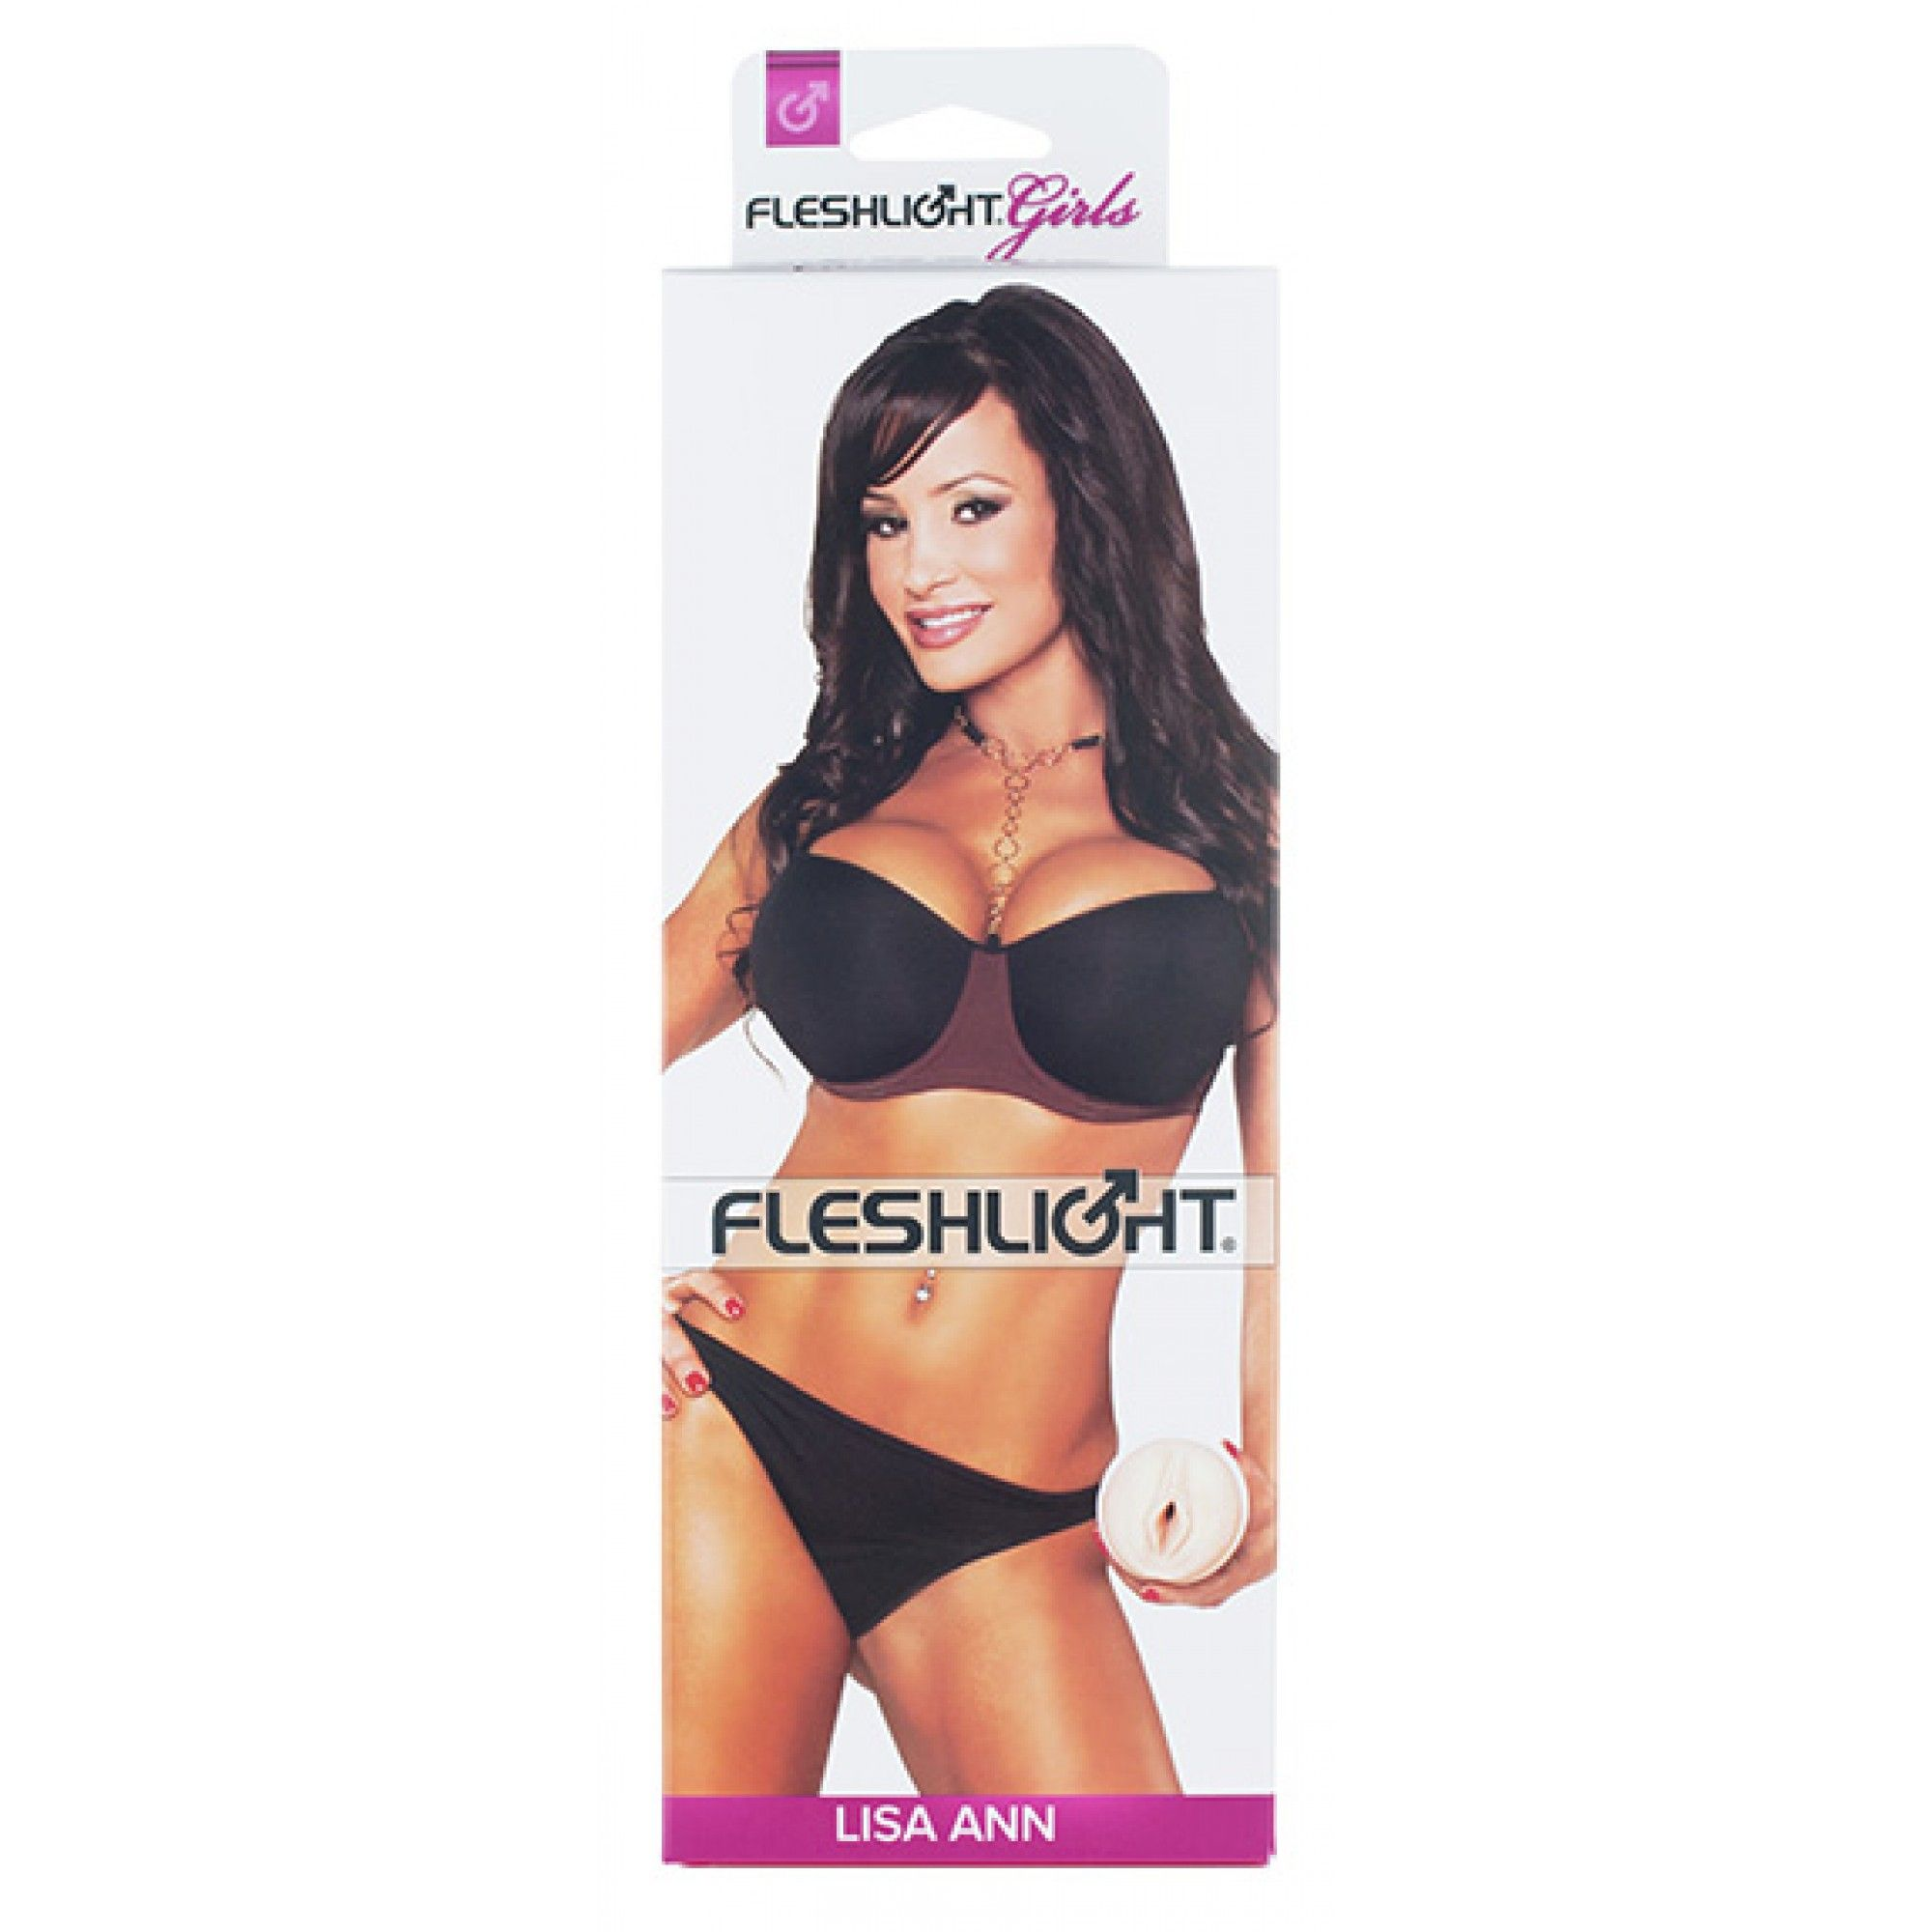 fleshlight lotus datingsidor